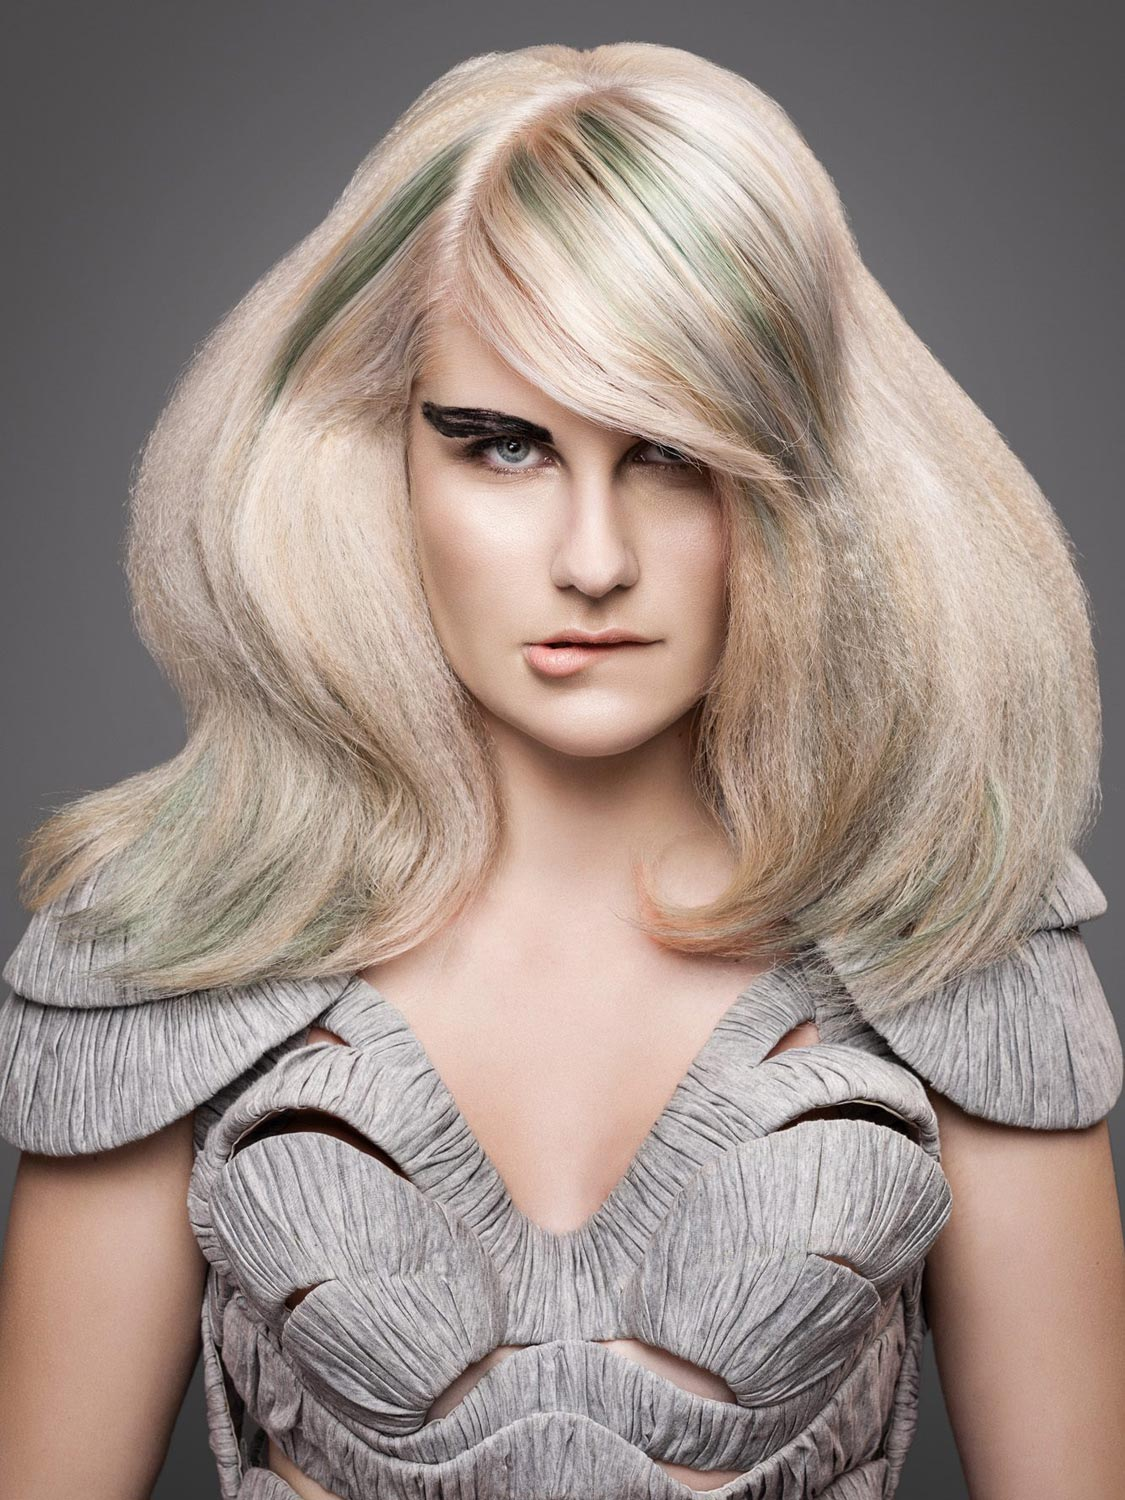 Michaela Kratochvílová, Salon TOP, Třebíč – nominace v soutěžní kategorii Color Zoom Collection 2015 GLOBAL PARTNER COLORIST.